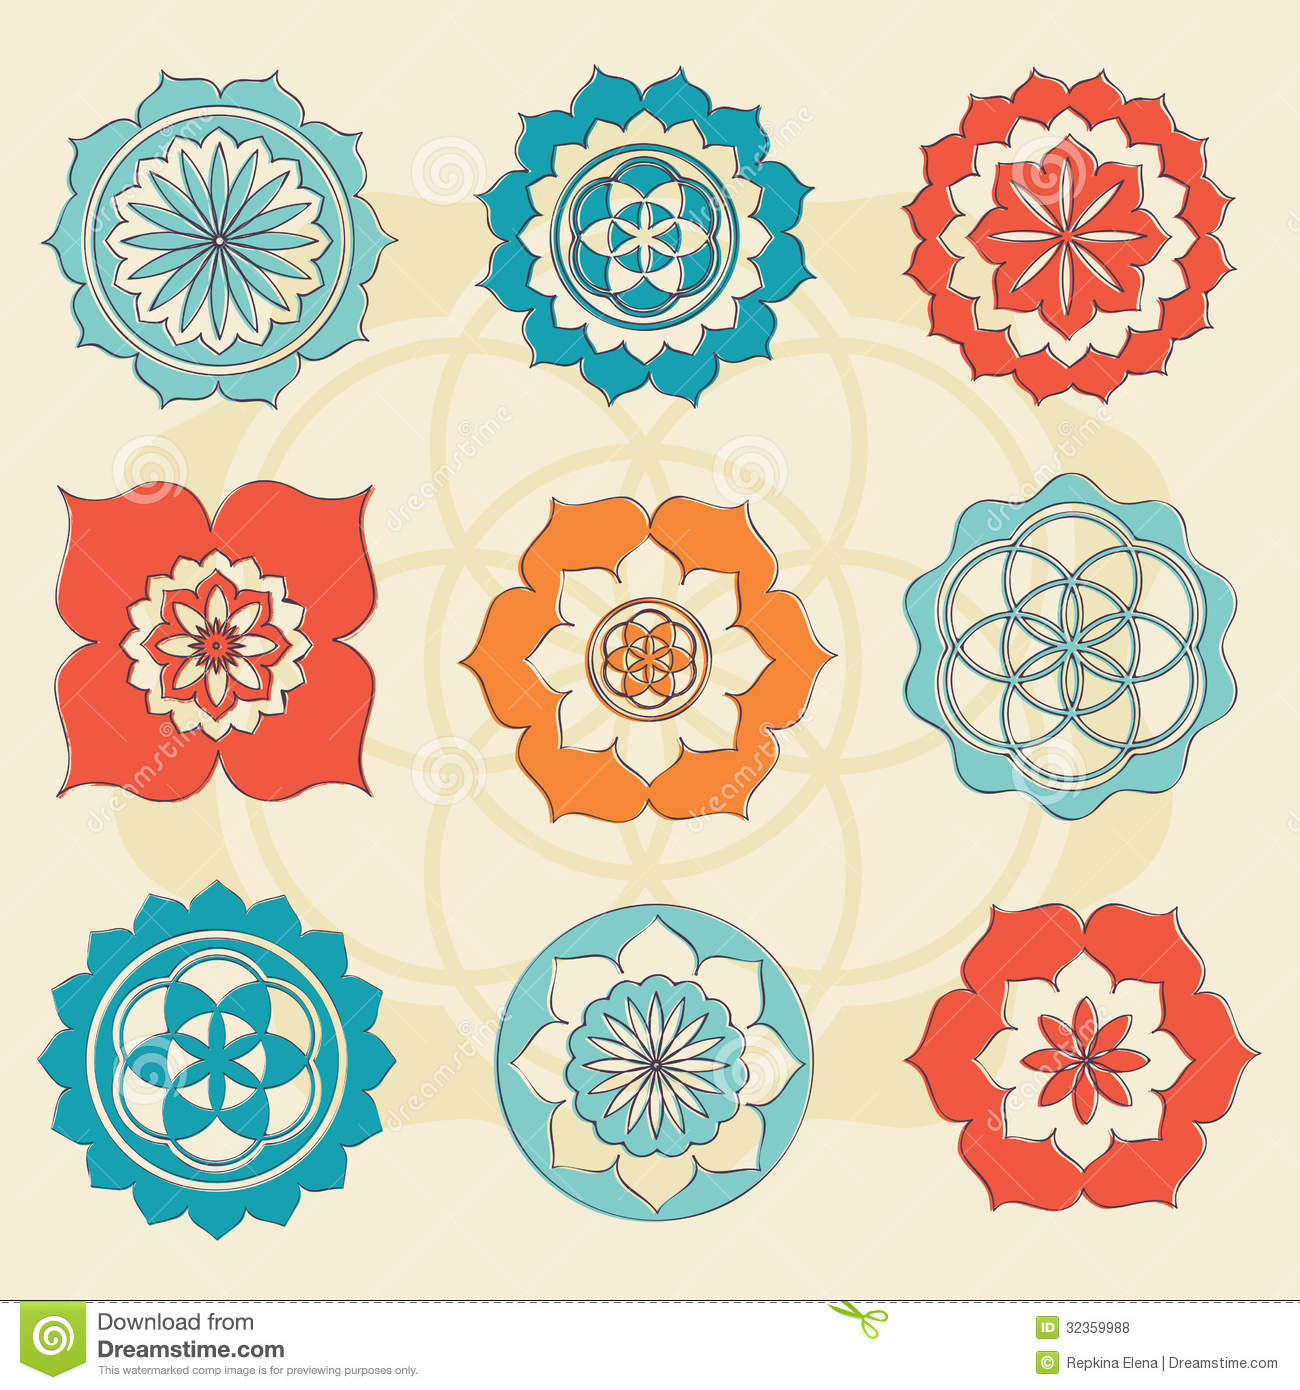 Sacred Geometry Flower Of Life Symbols Royalty Free Stock